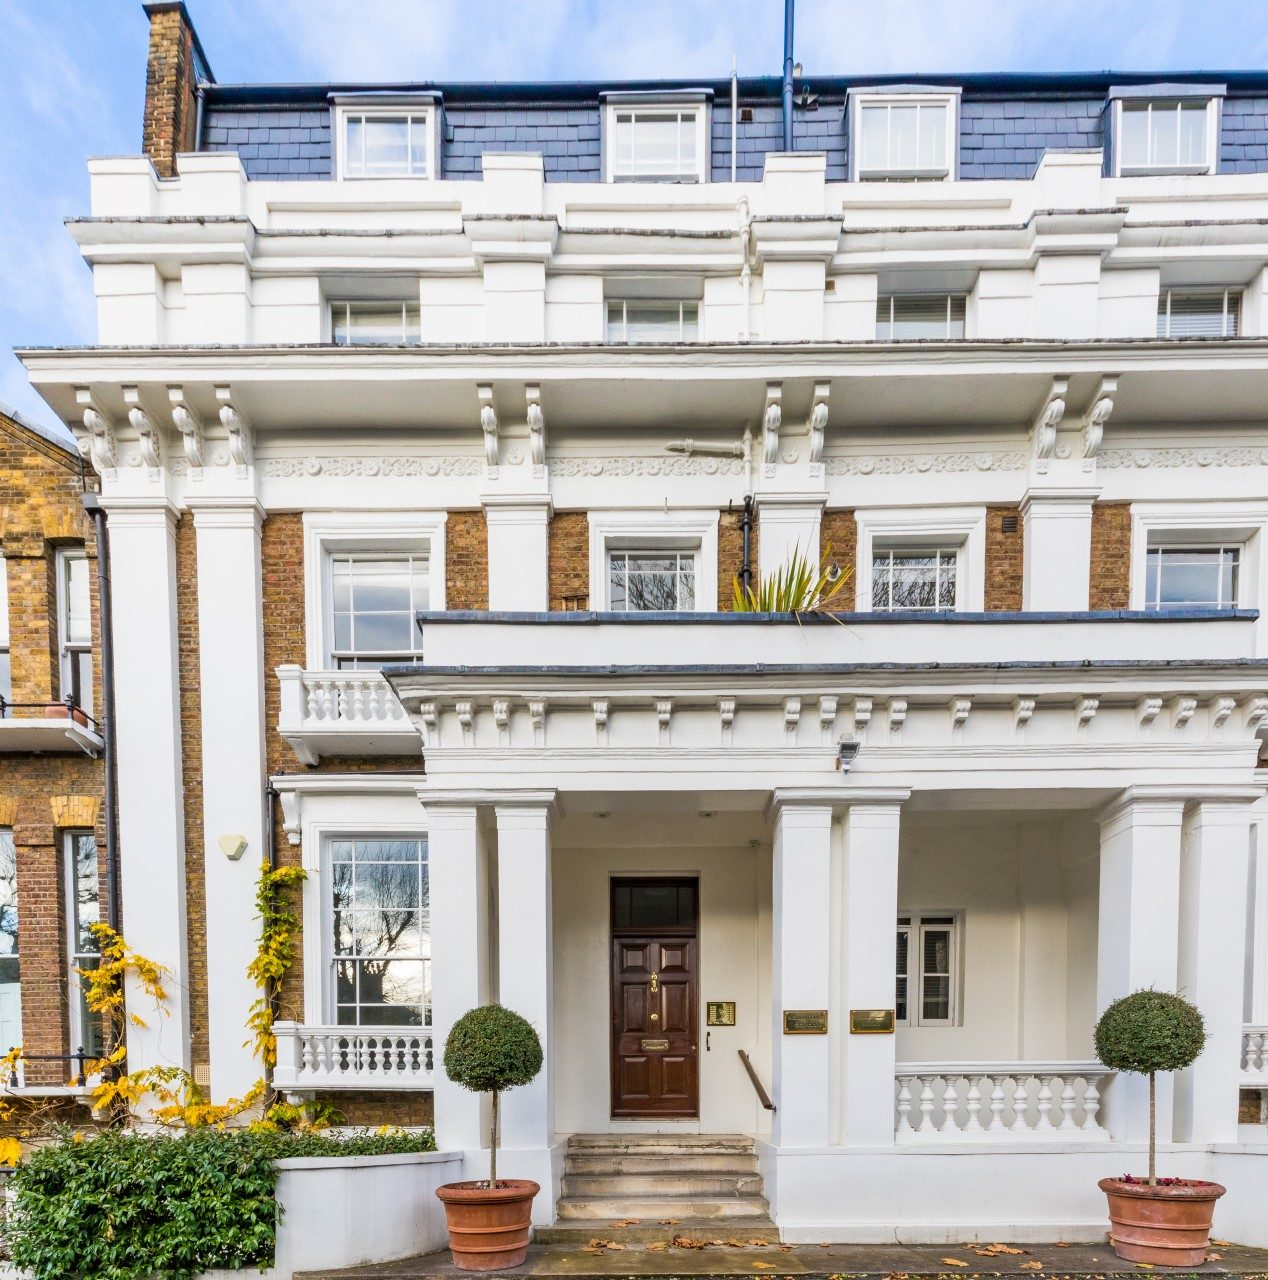 Holland Park Apartments: Large And Bright One Bedroom Apartment With Terrace In